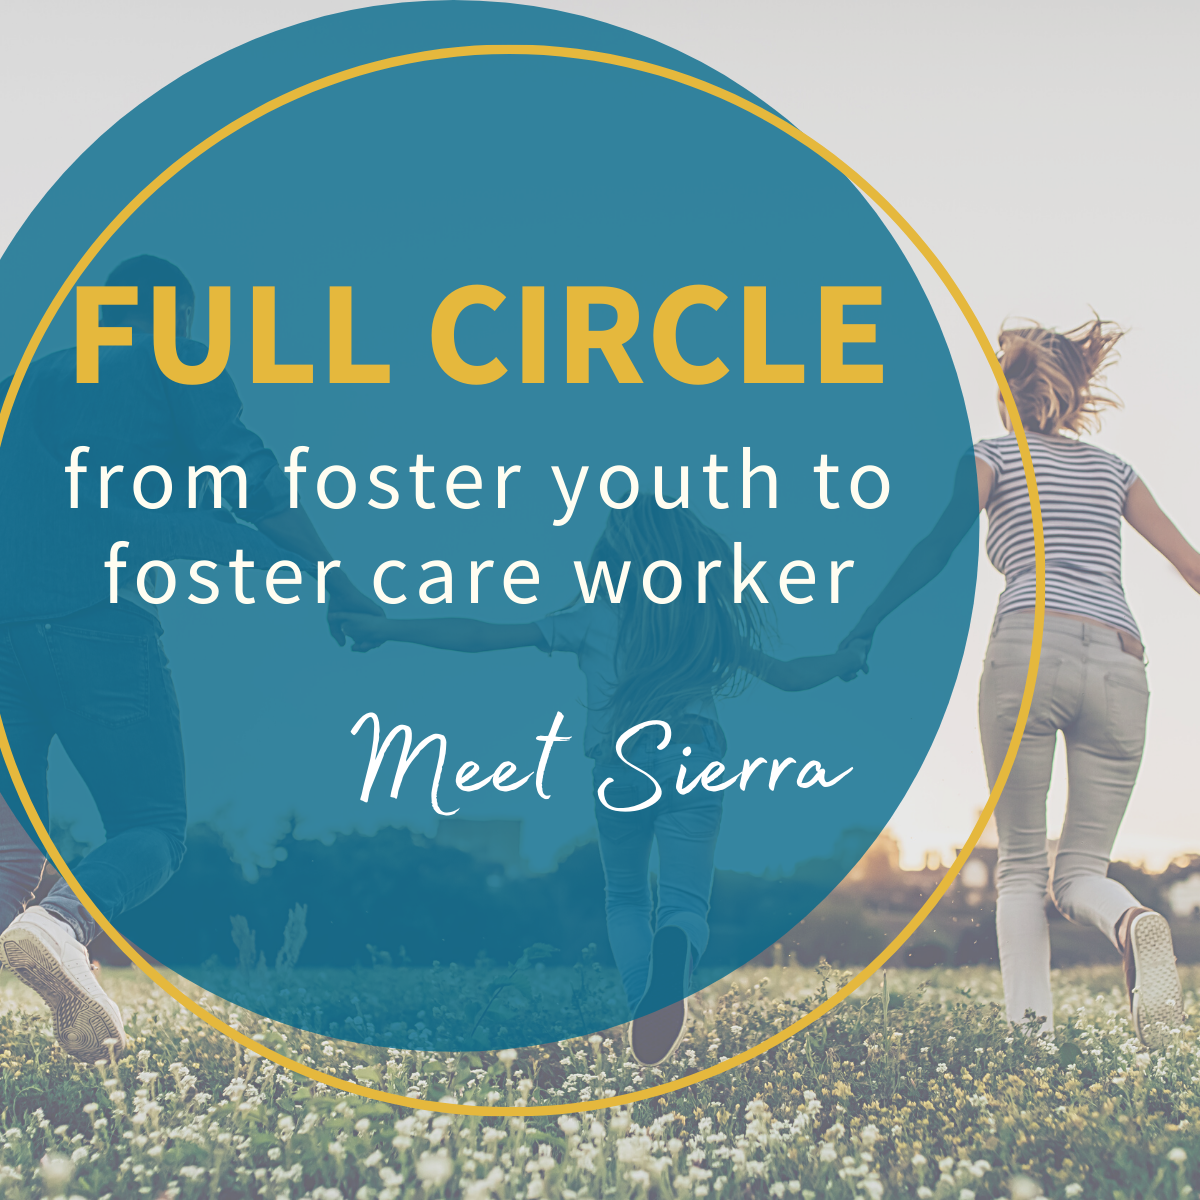 From Foster Youth to Foster Care: Sierra Toomey Shares Her Story